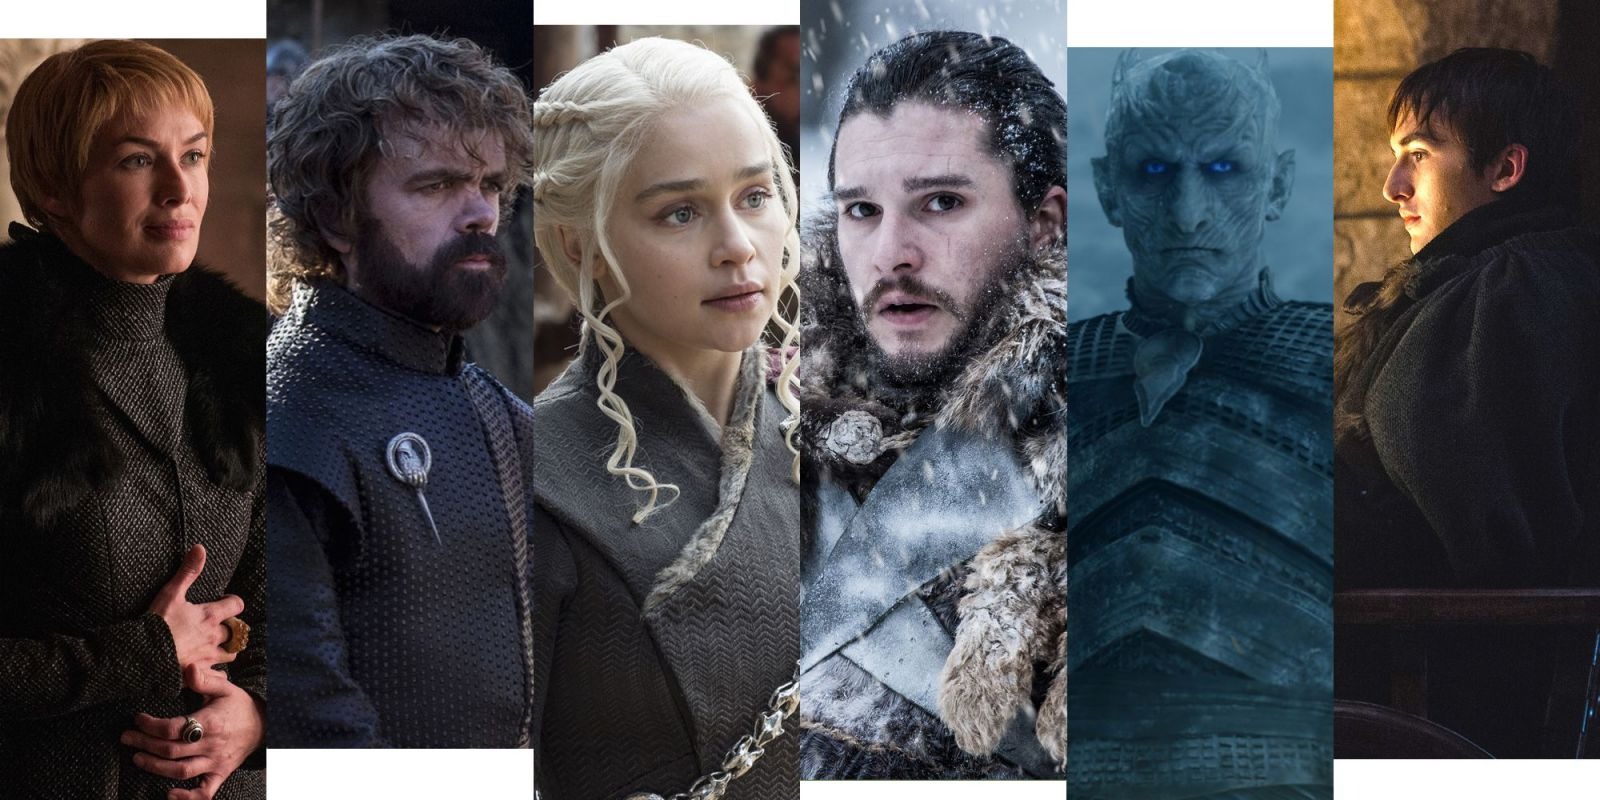 game-of-thrones-season-eight-theories-1504644586.jpg